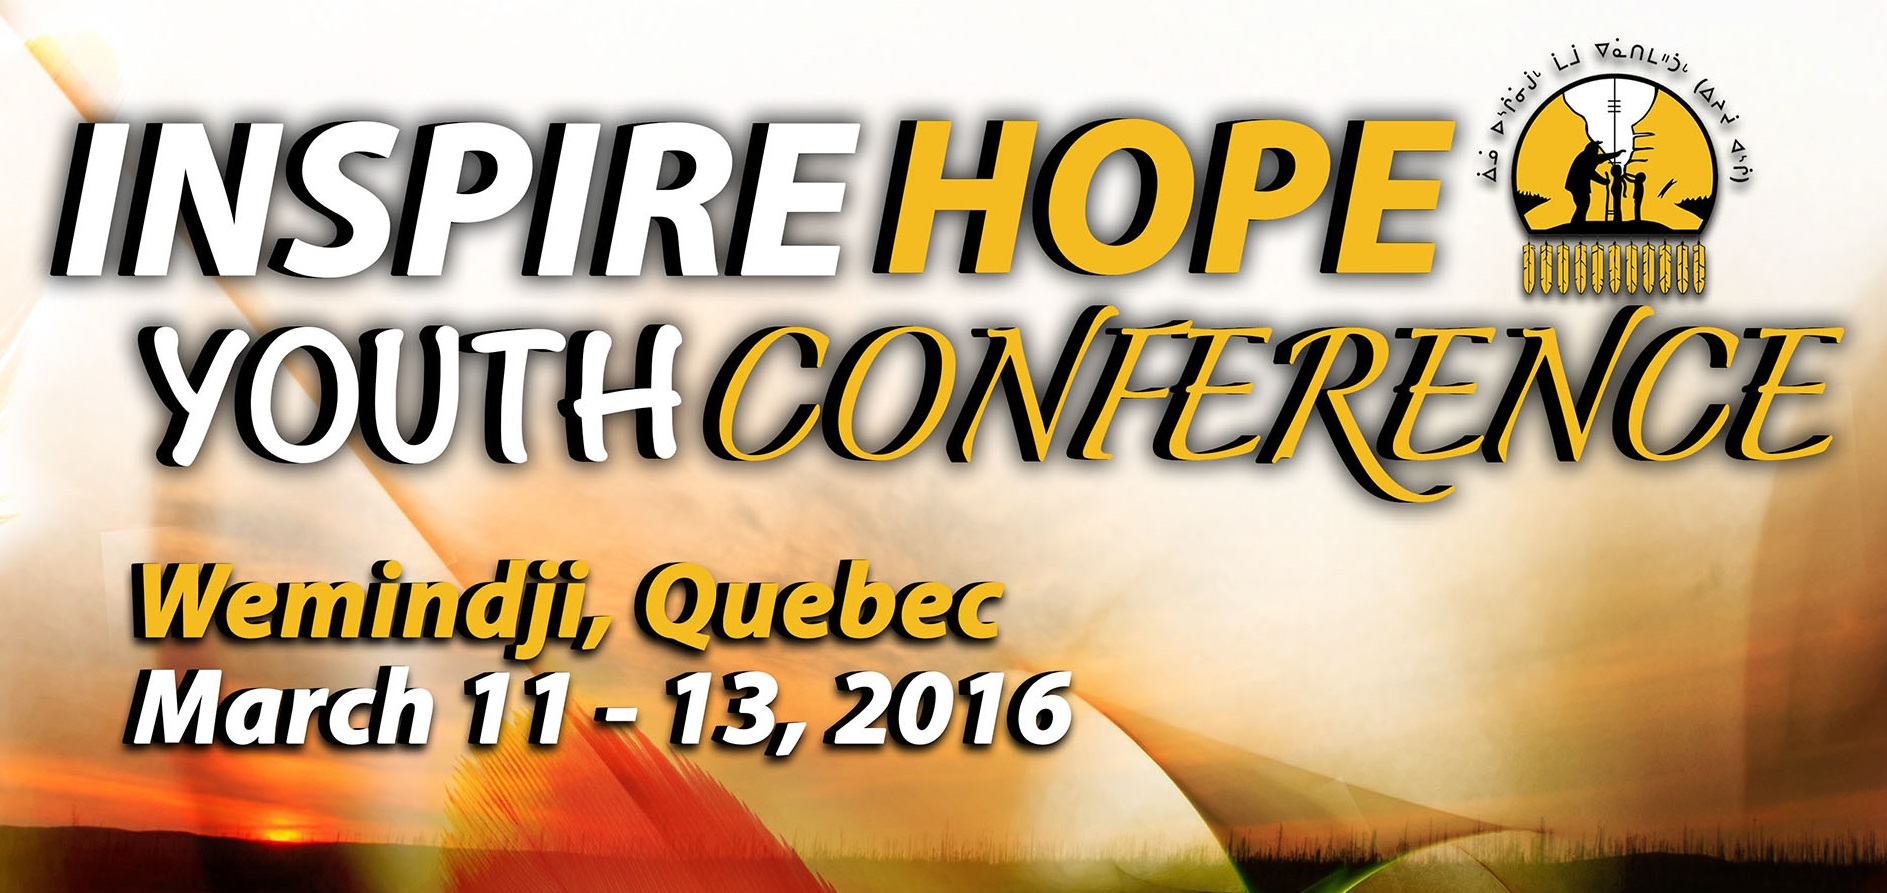 Poster-for-Inspire-Hope-conference-name